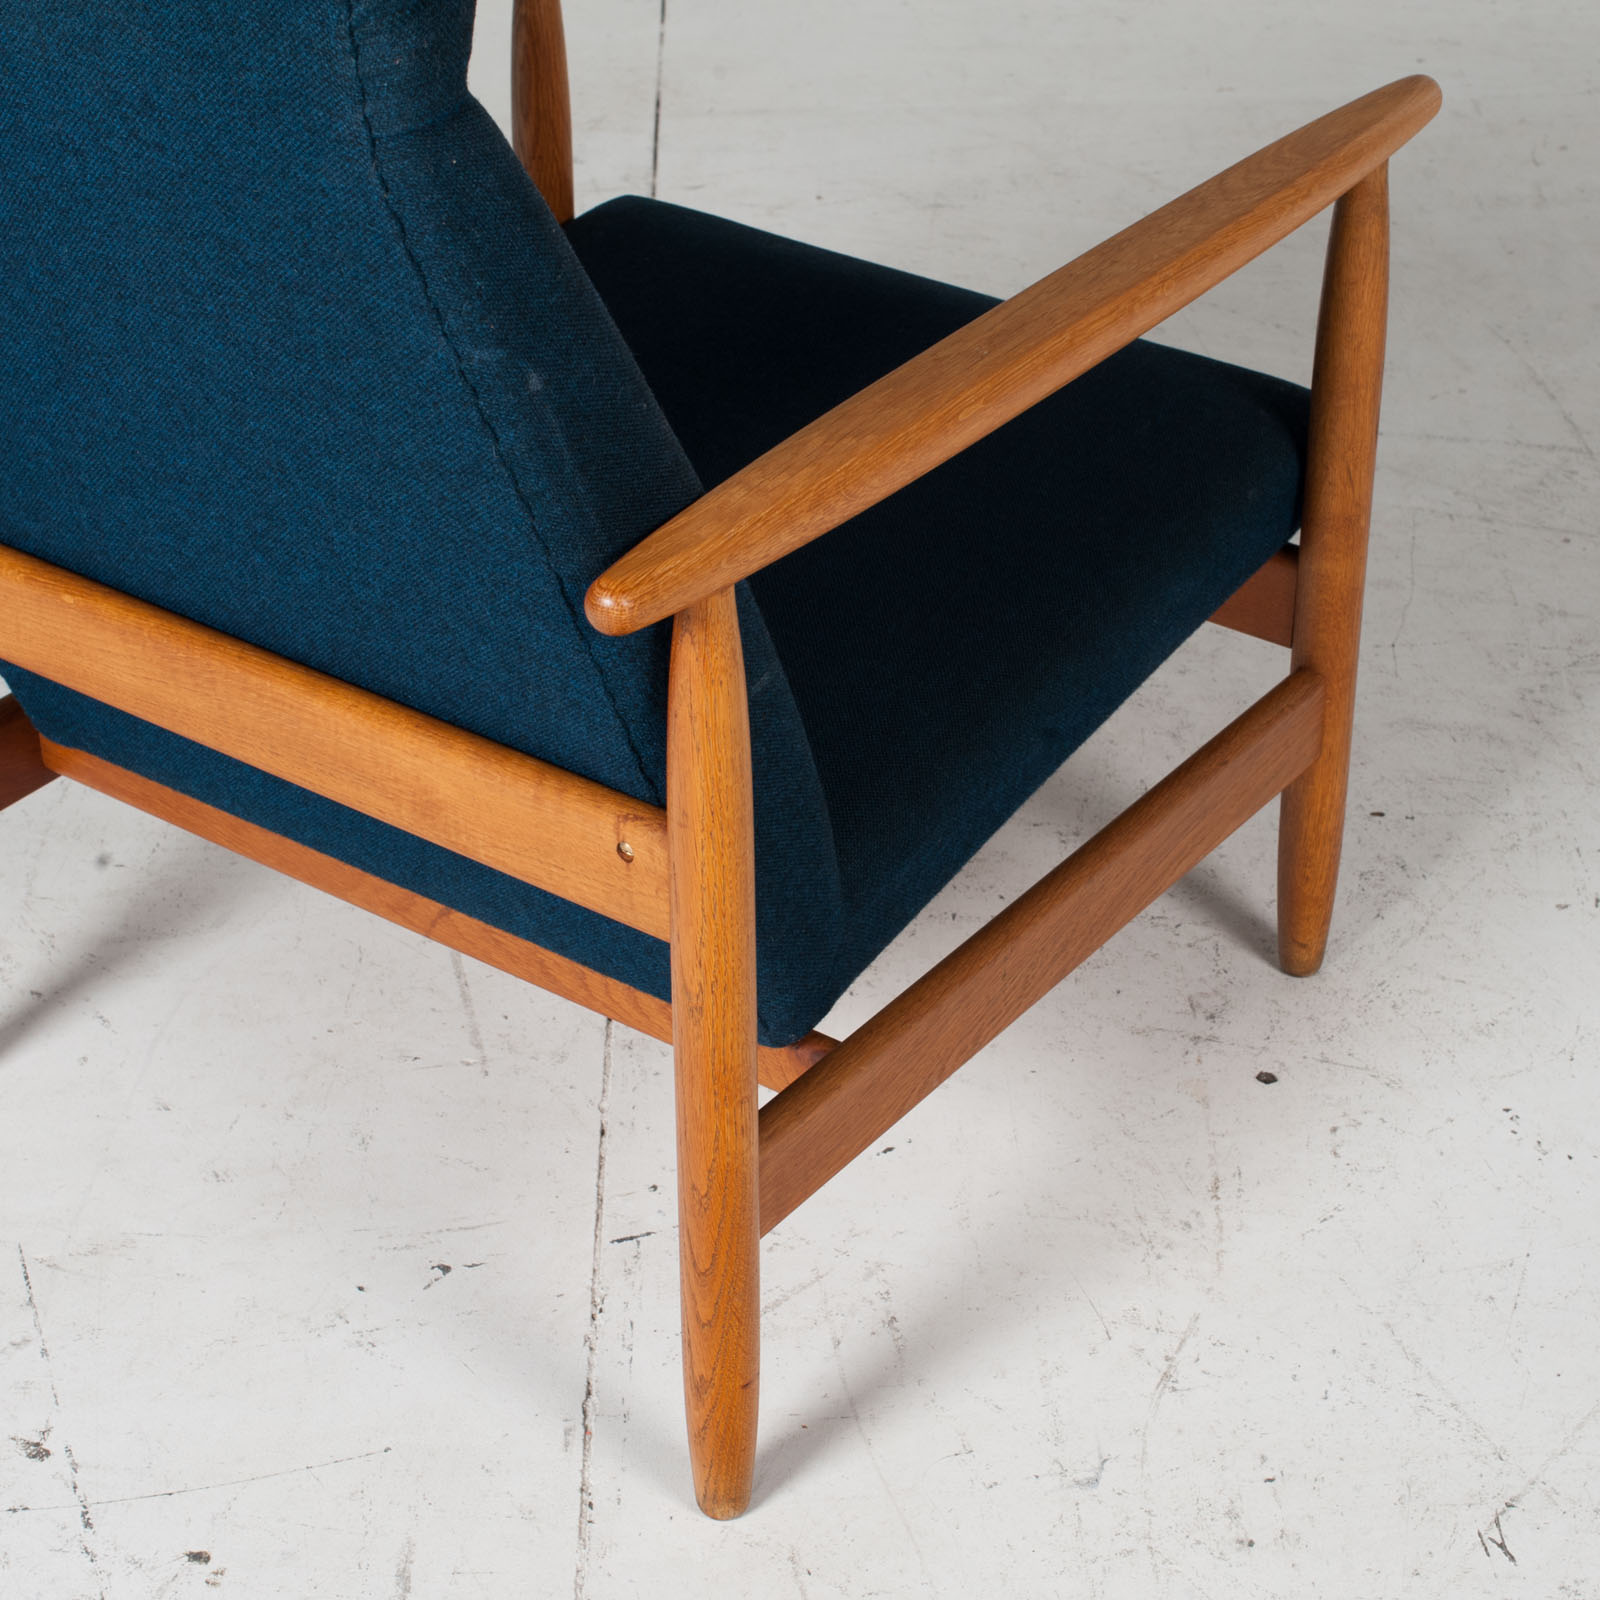 Armchair By Ejvind A. Johansson In Blue Upholstery, 1960s, Denmark10